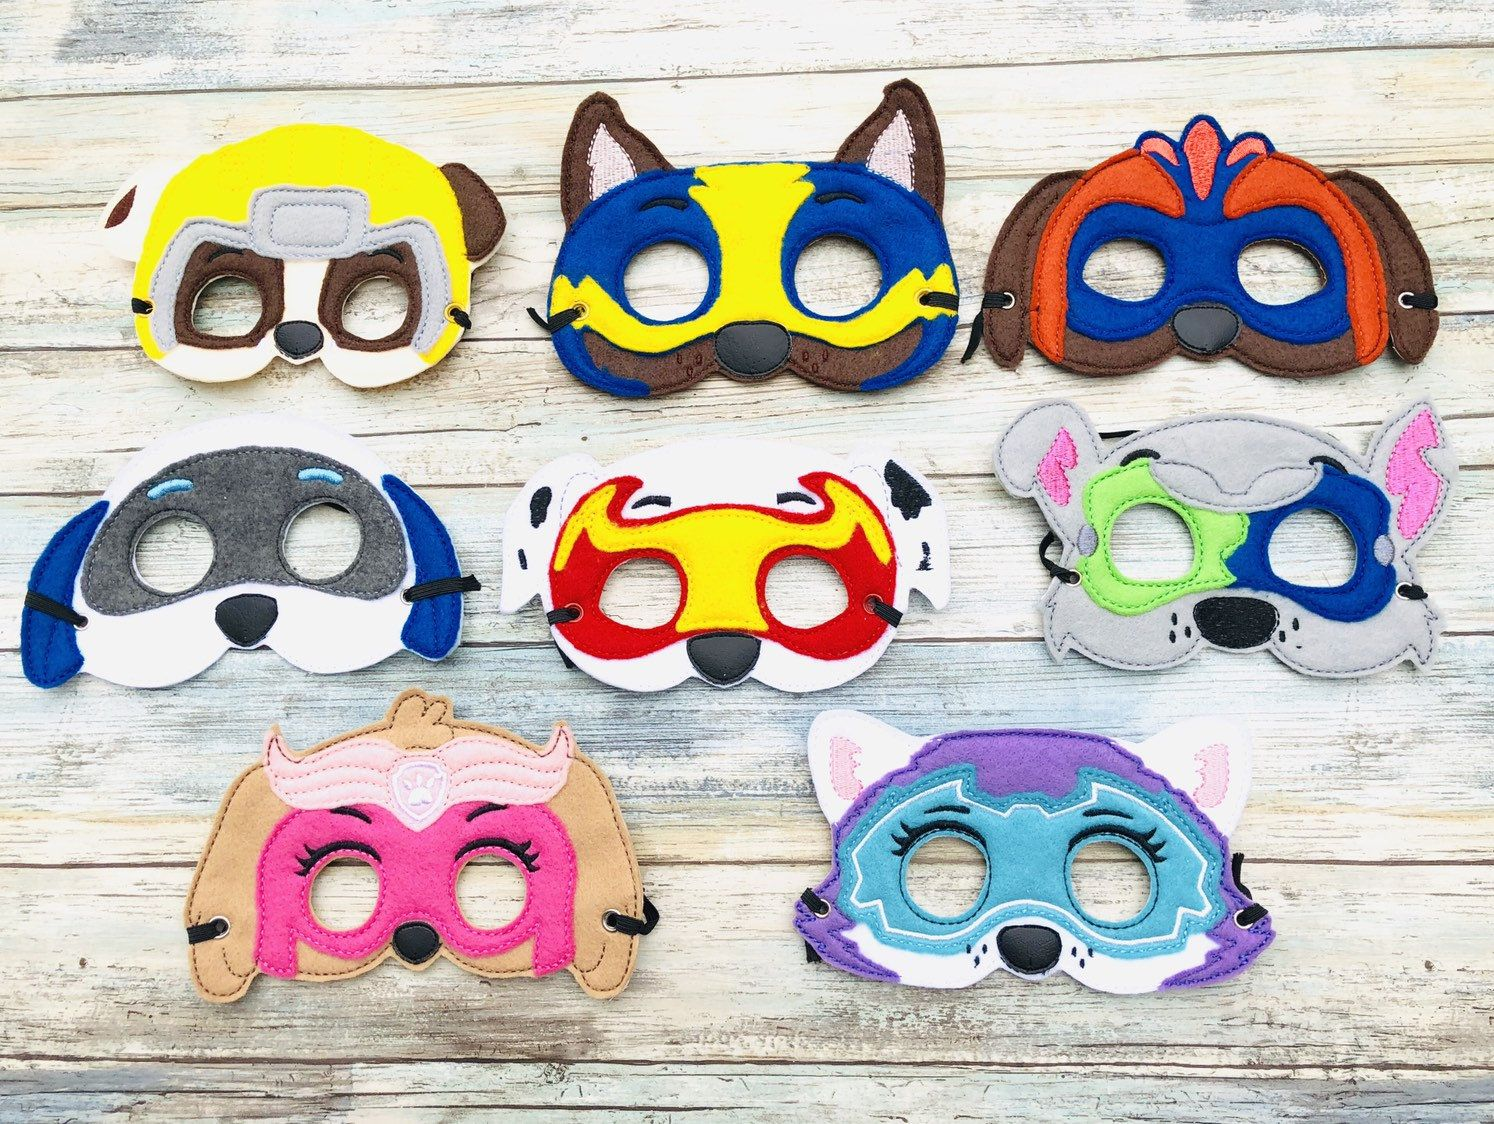 Embroidered mask  Mighty pups Paw patrol - Paw patrol birthday, Paw patrol party, Paw patrol, Paw patrol stickers, Paw patrol masks, Face masks for kids - Embroidered mask  Made of  felt This mask is embroidered  Its made of felt  and has a soft felt back for the comfort of your child  There is a 15 inch elastic band that will fit most children   The elastic allows your child to wear and remove the mask easy  Perfect for Birthday party  Halloween